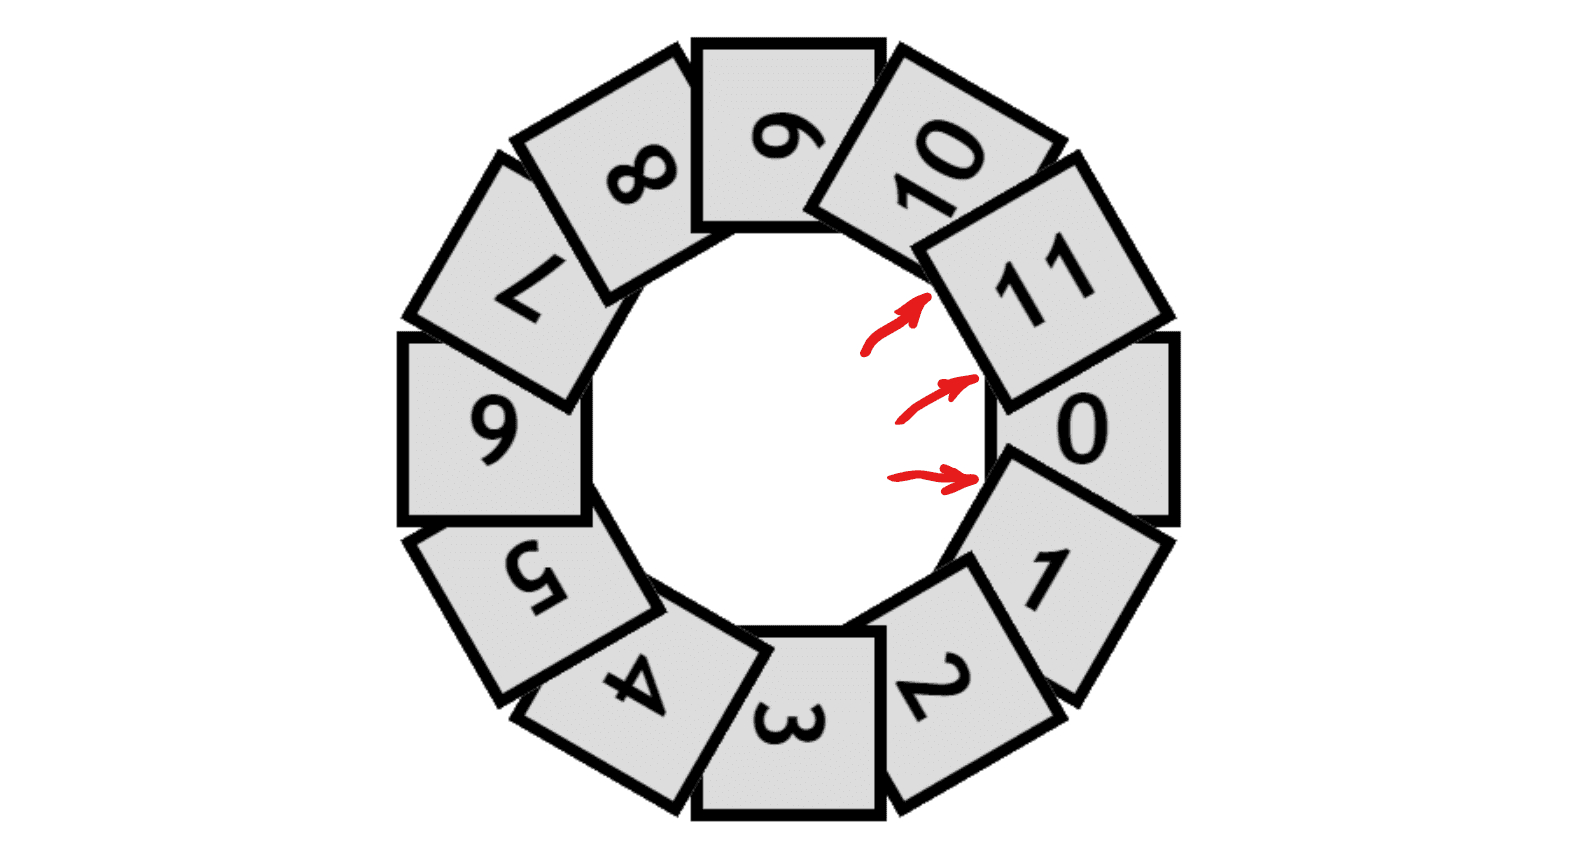 Highlighting the issue we encounter with our circular distribution using the above code. The last item (11), ends up both over one before it (10) and over the one after (0), while the first item (0) is both under the one before it (11) and under the one after it (1).